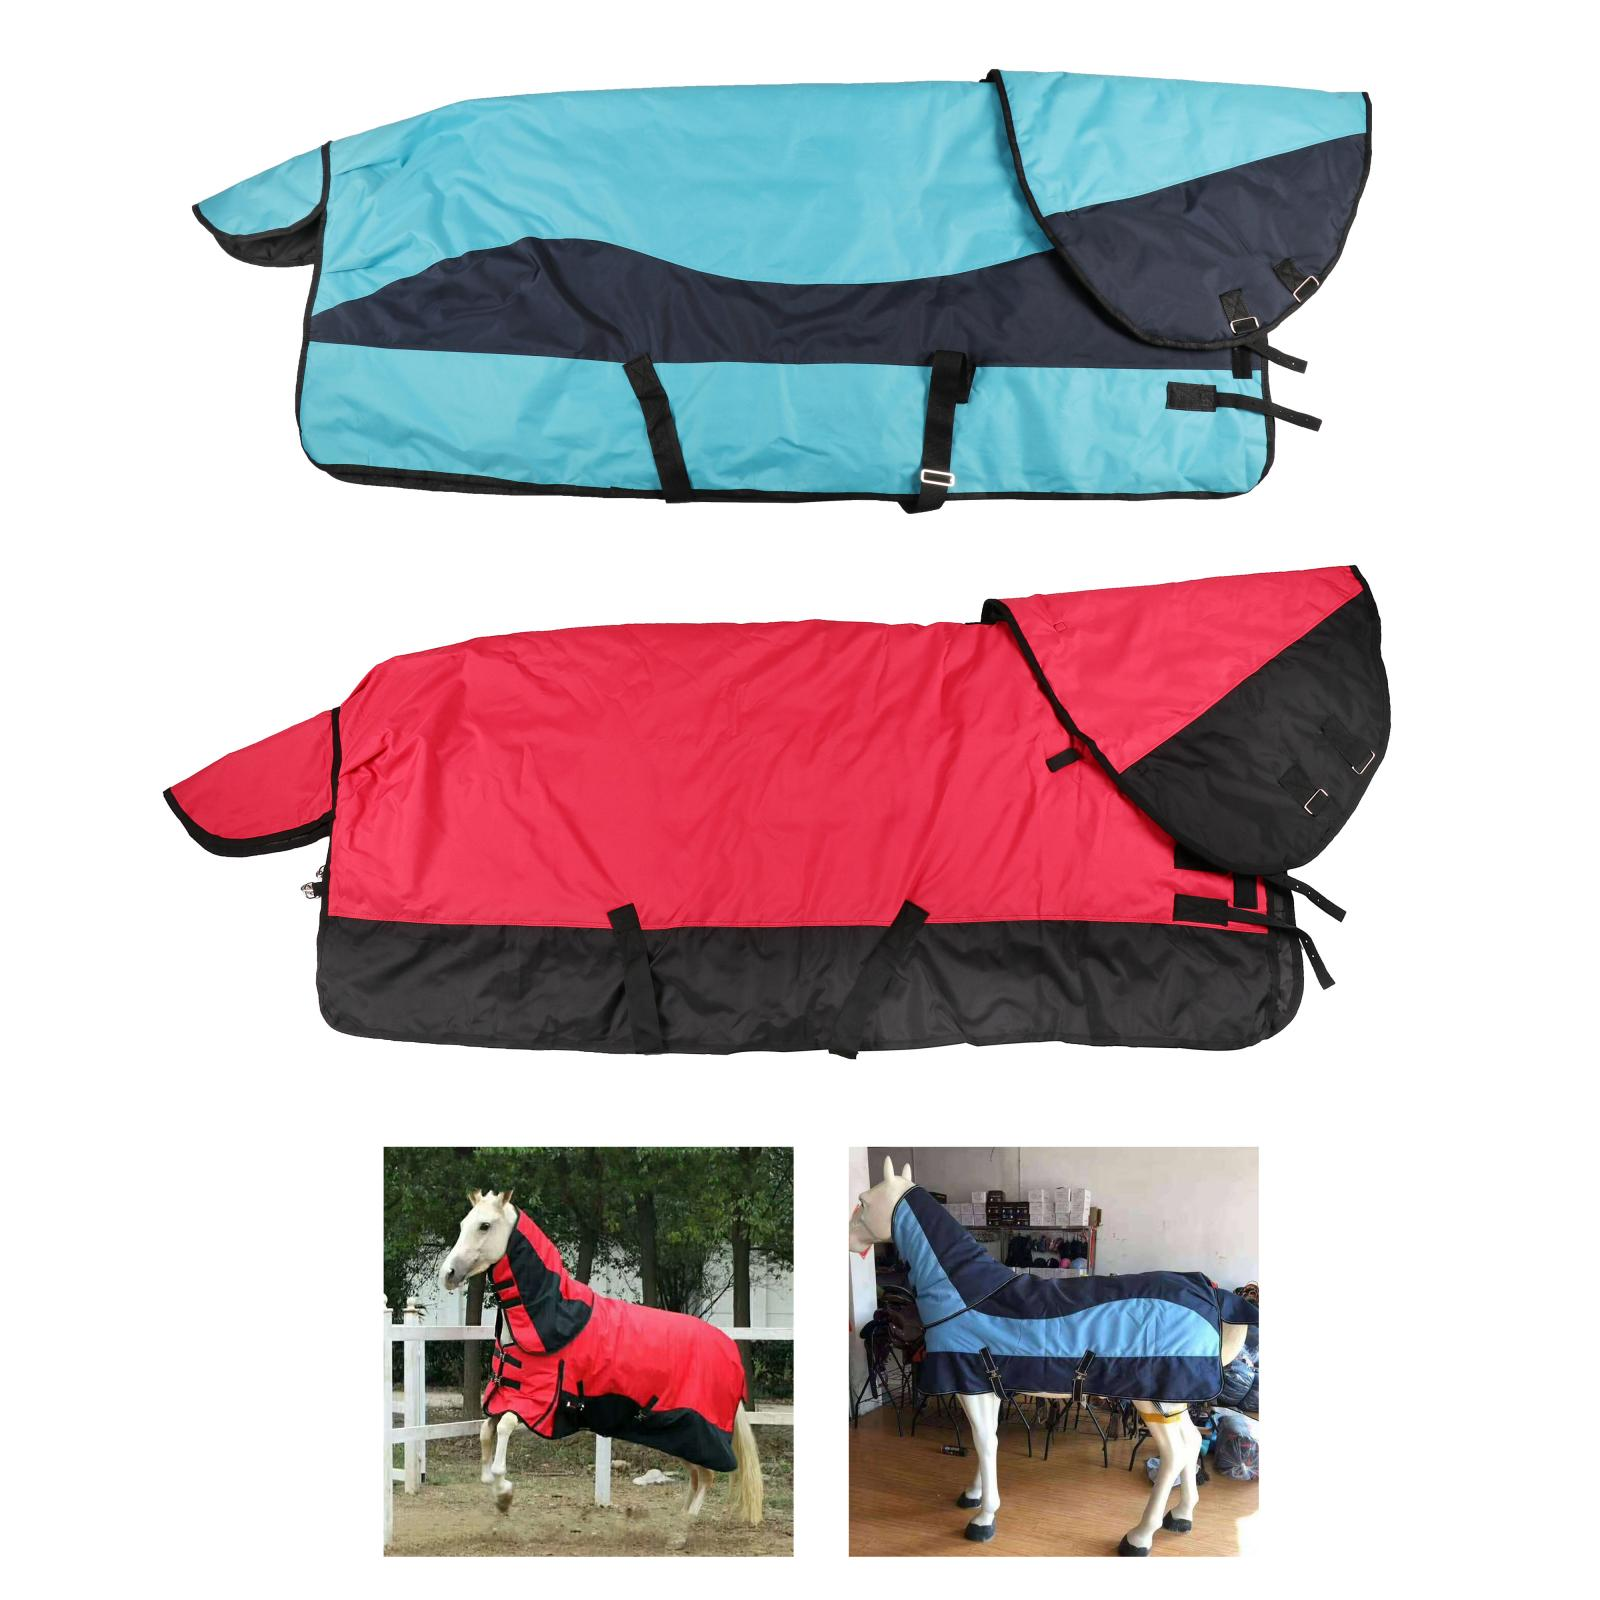 All-Around 6000D, 350 G Horse Turnout Blankets for Horse - Waterproof, Breathable and Perfect for Frigid Winter